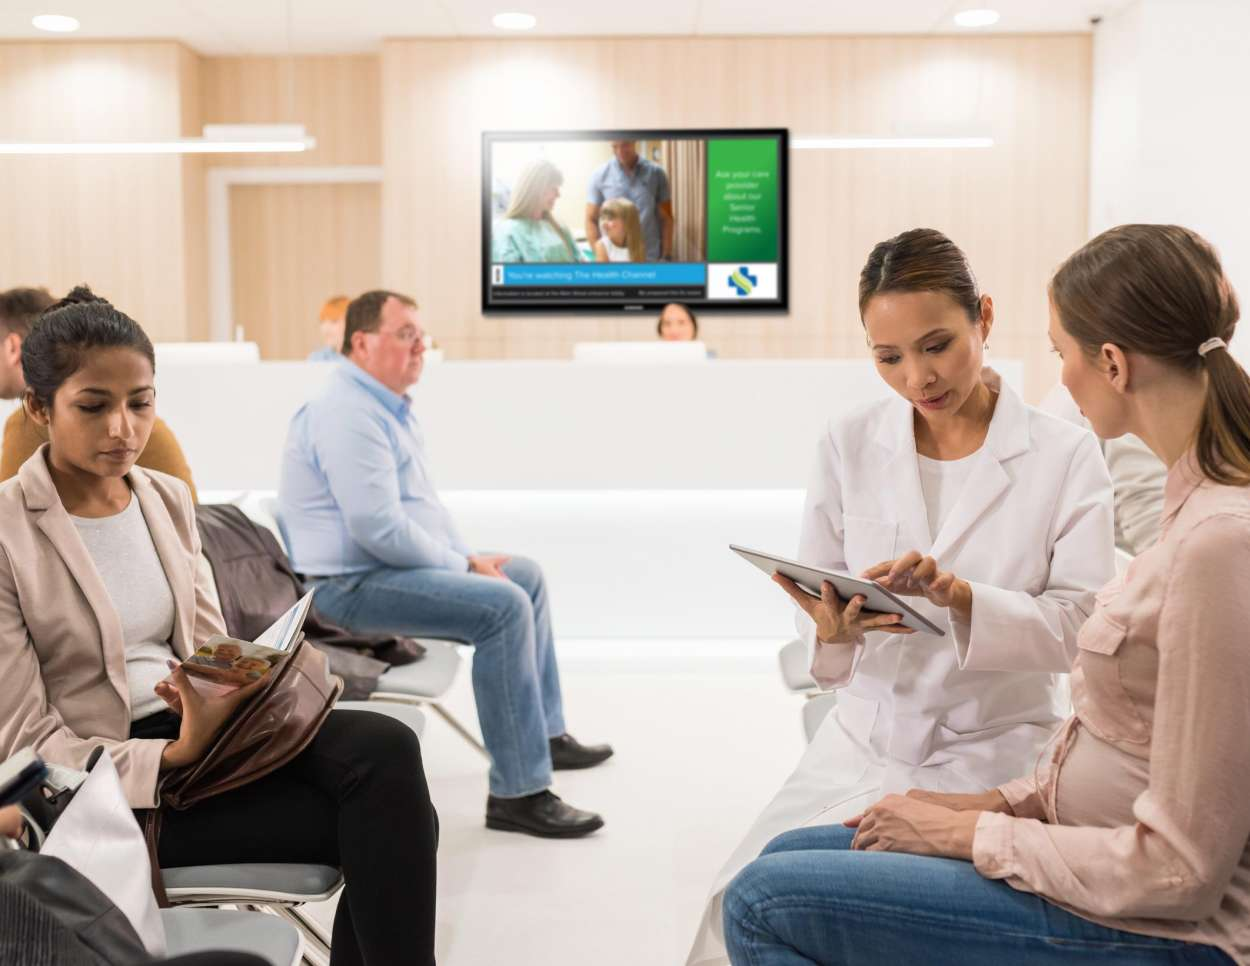 KONVERT™ TV for Healthcare Waiting Rooms